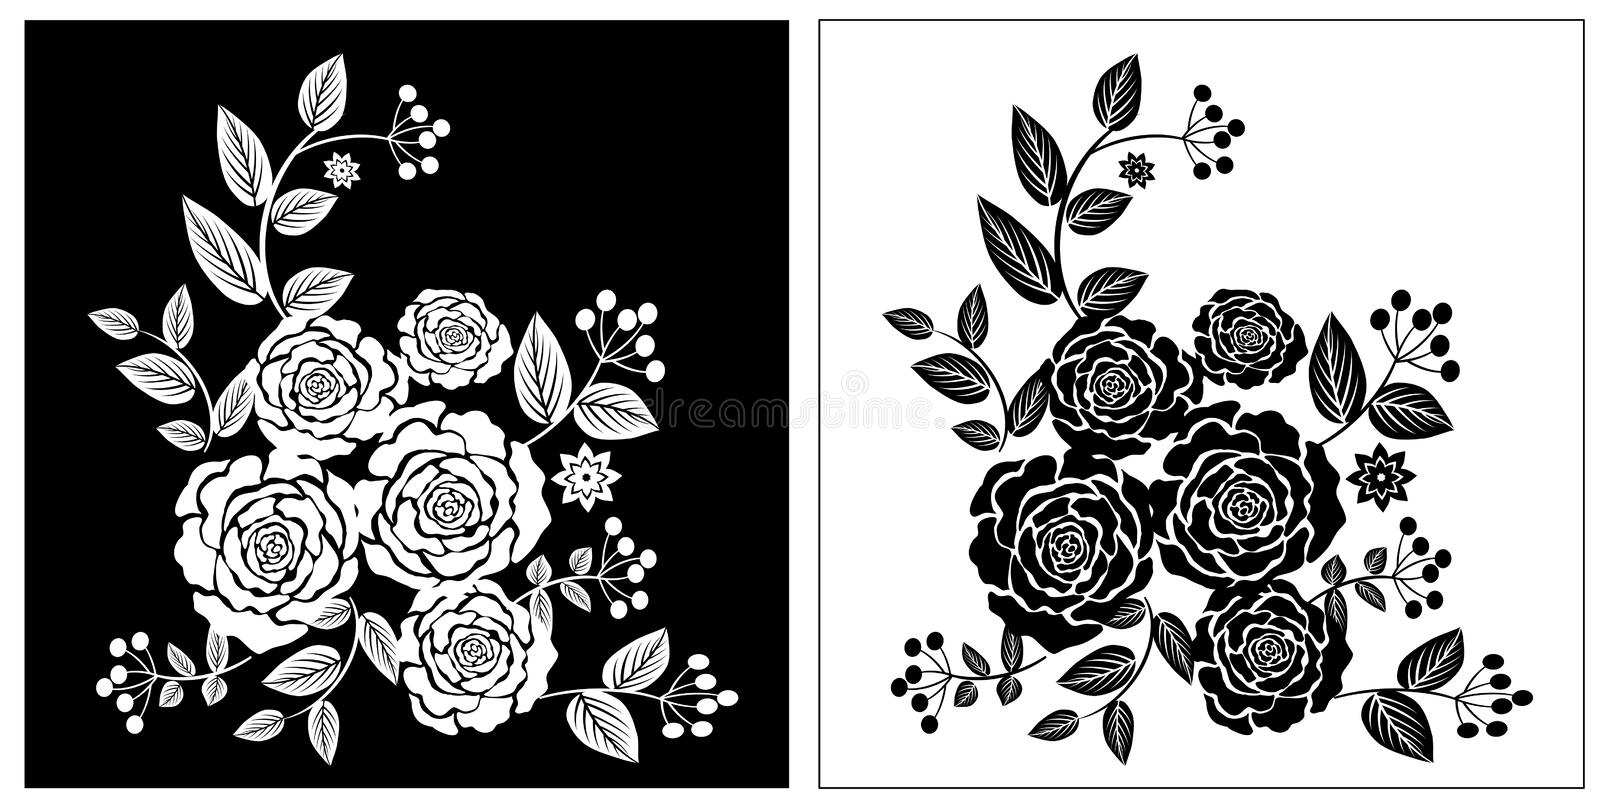 Black White Rose flowers. Black and White Retro Flowers card template royalty free illustration